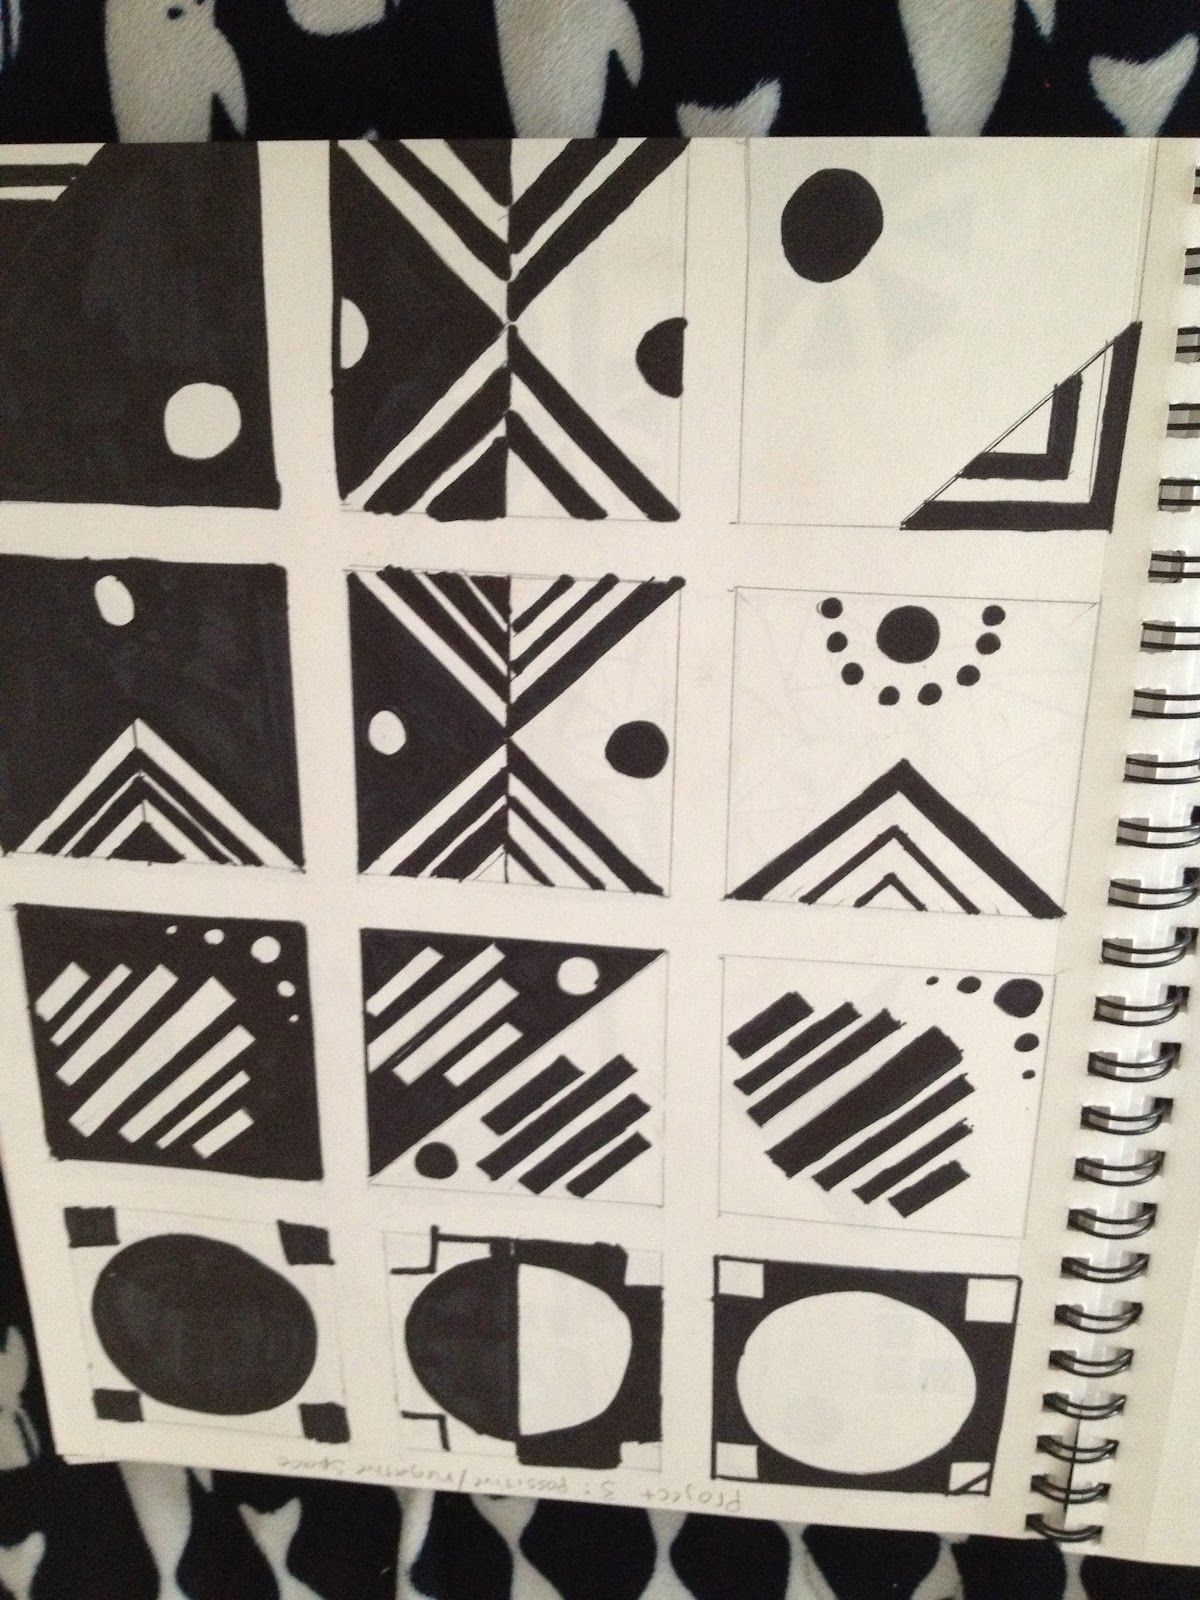 Studio 1 Positive Negative Space Tryptich Page Thumbnails For Project